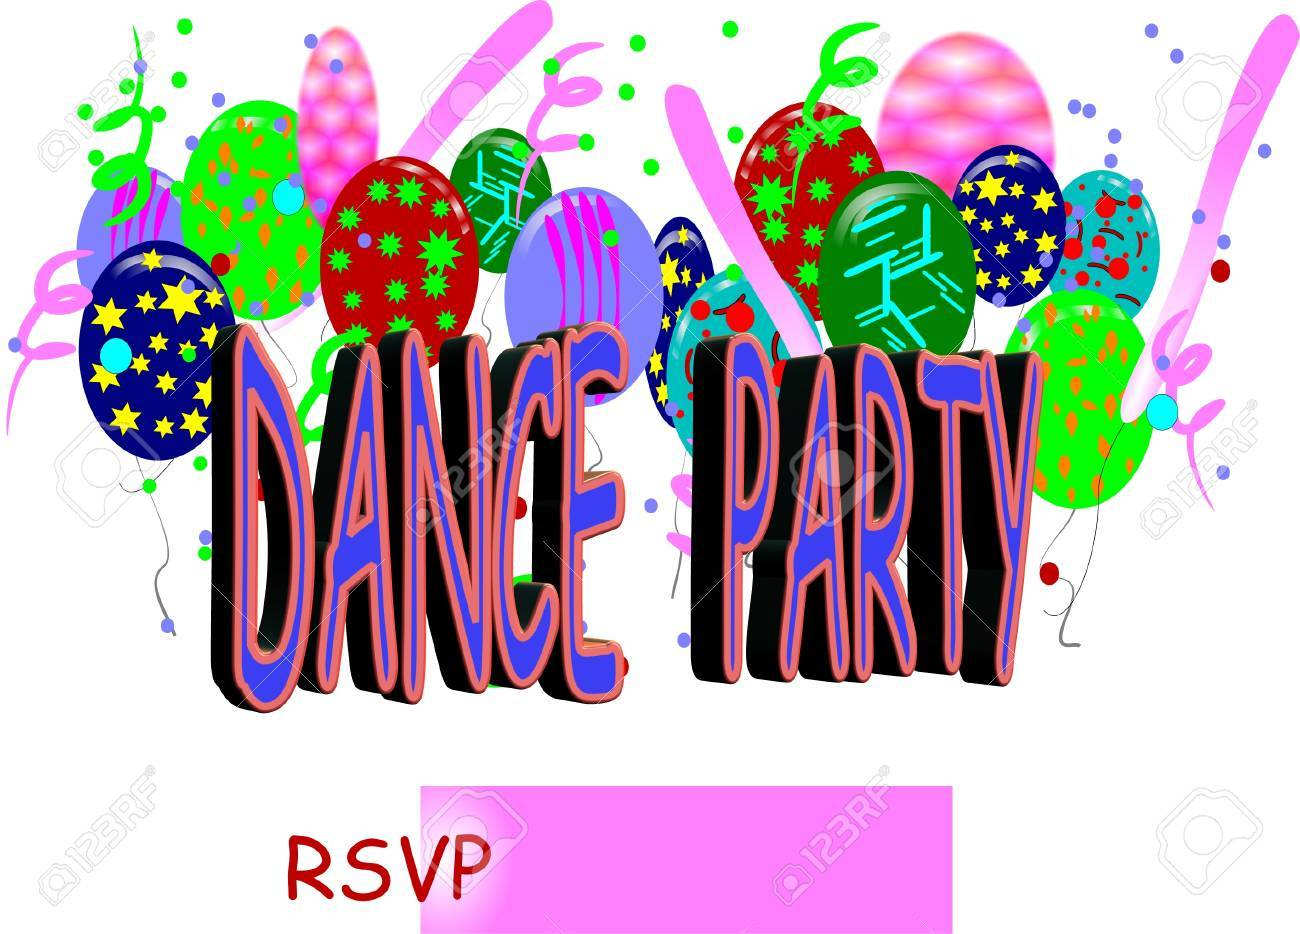 Dance Party Invite Royalty Free Cliparts, Vectors, And Stock ...